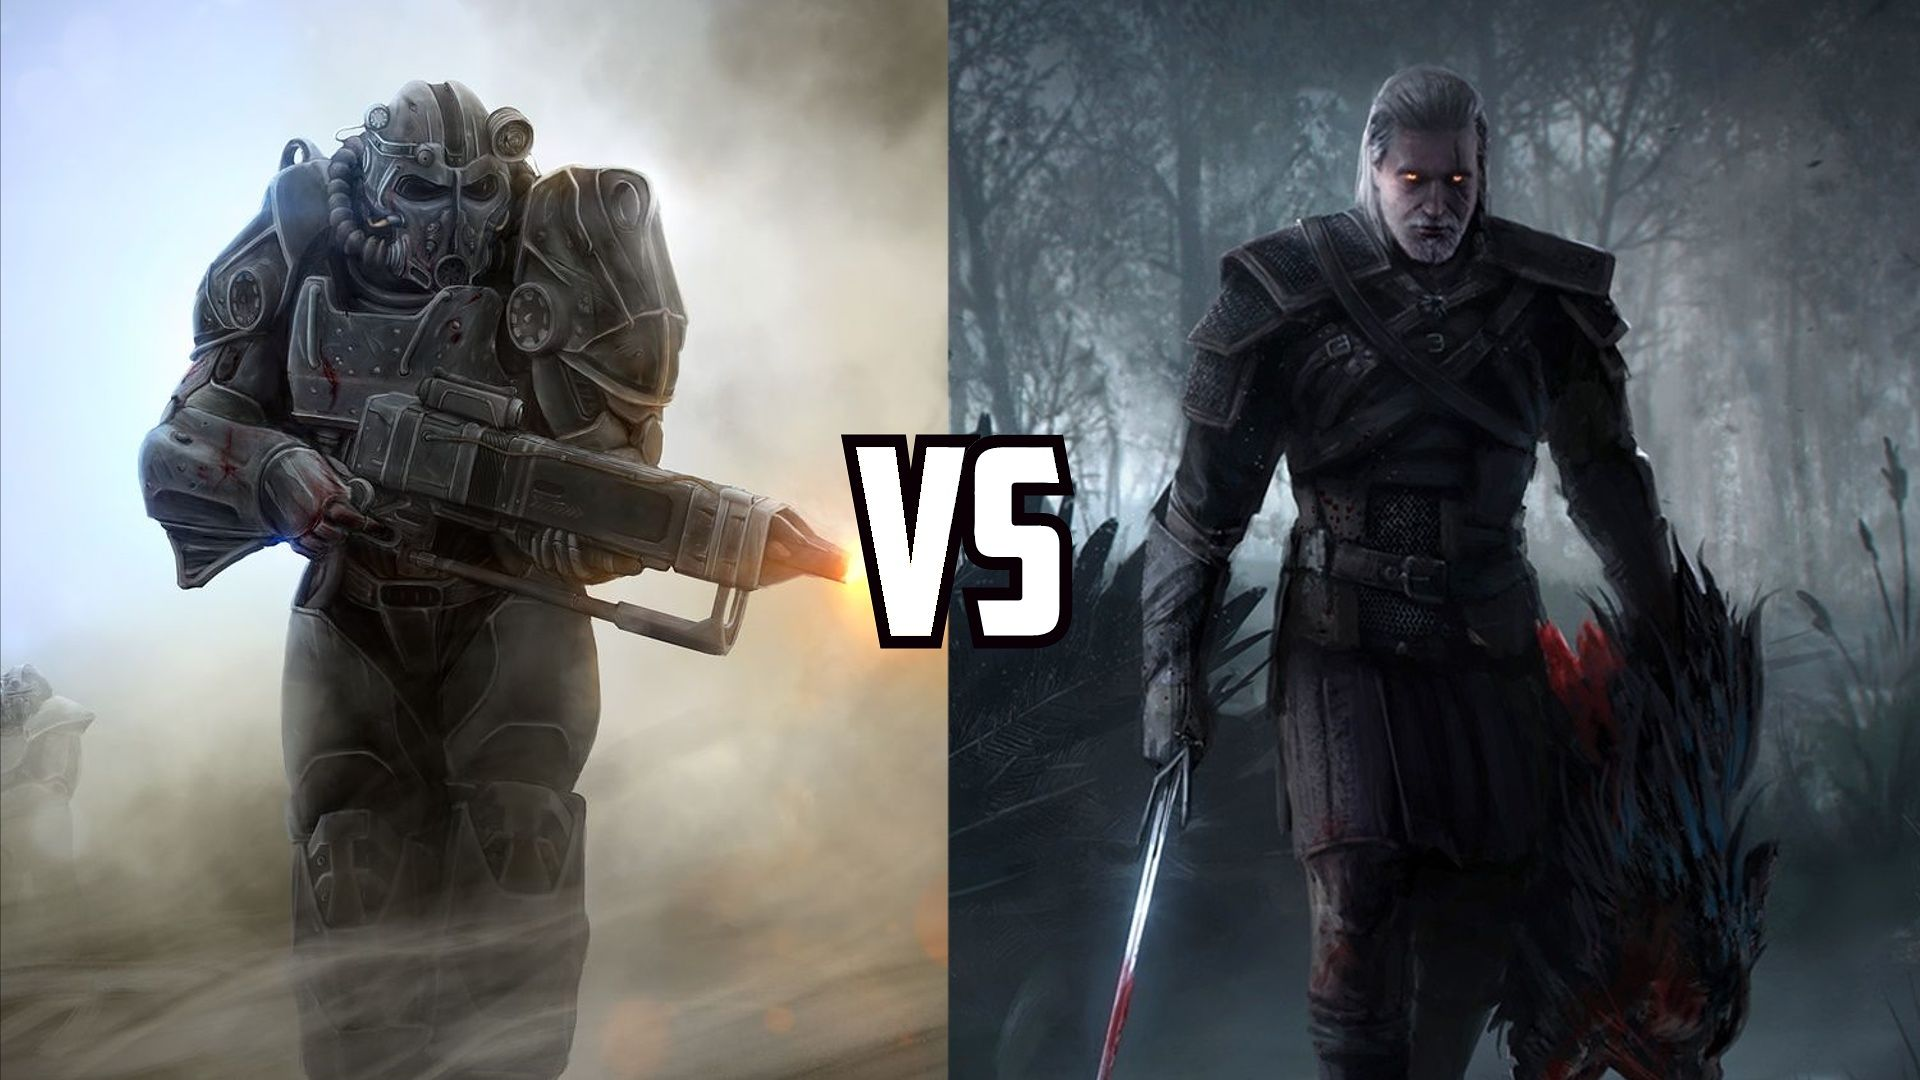 Which is Better? The Witcher 3 vs. Fallout 4